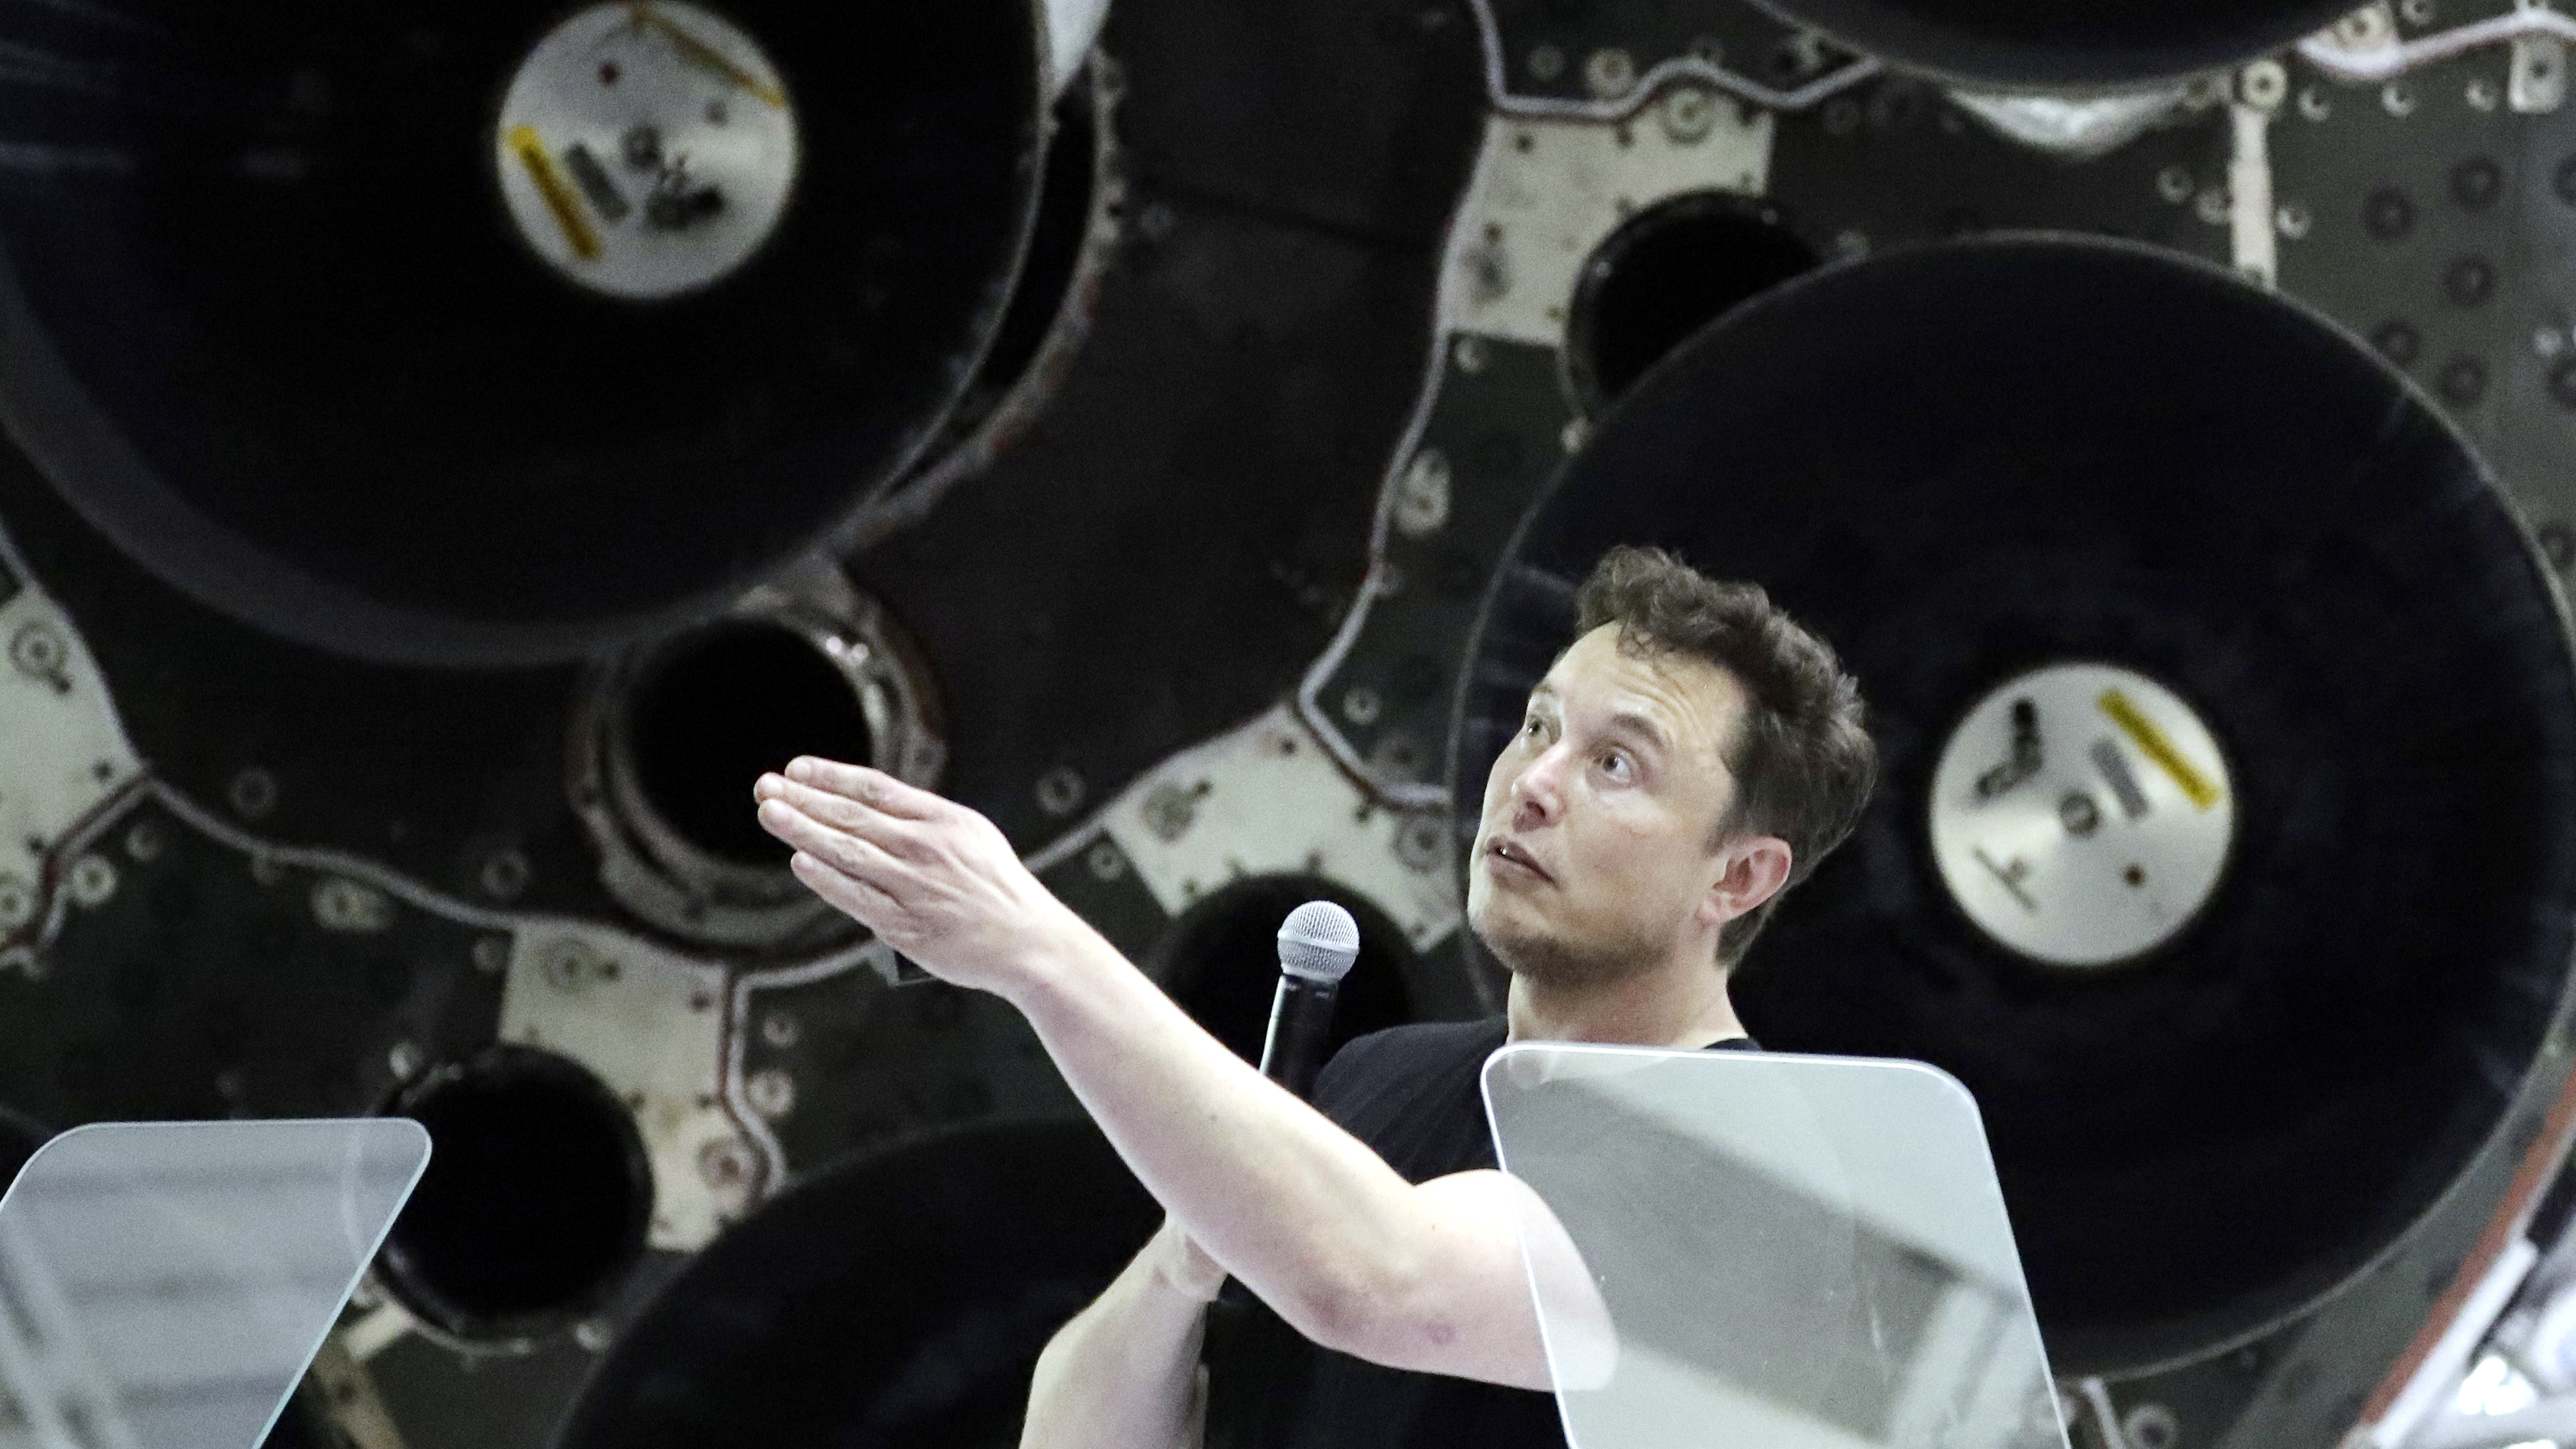 SpaceX founder and chief executive Elon Musk speaks after announcing Japanese billionaire Yusaku Maezawa as the first private passenger on a trip around the moon, Monday, Sept. 17, 2018, in Hawthorne, Calif.